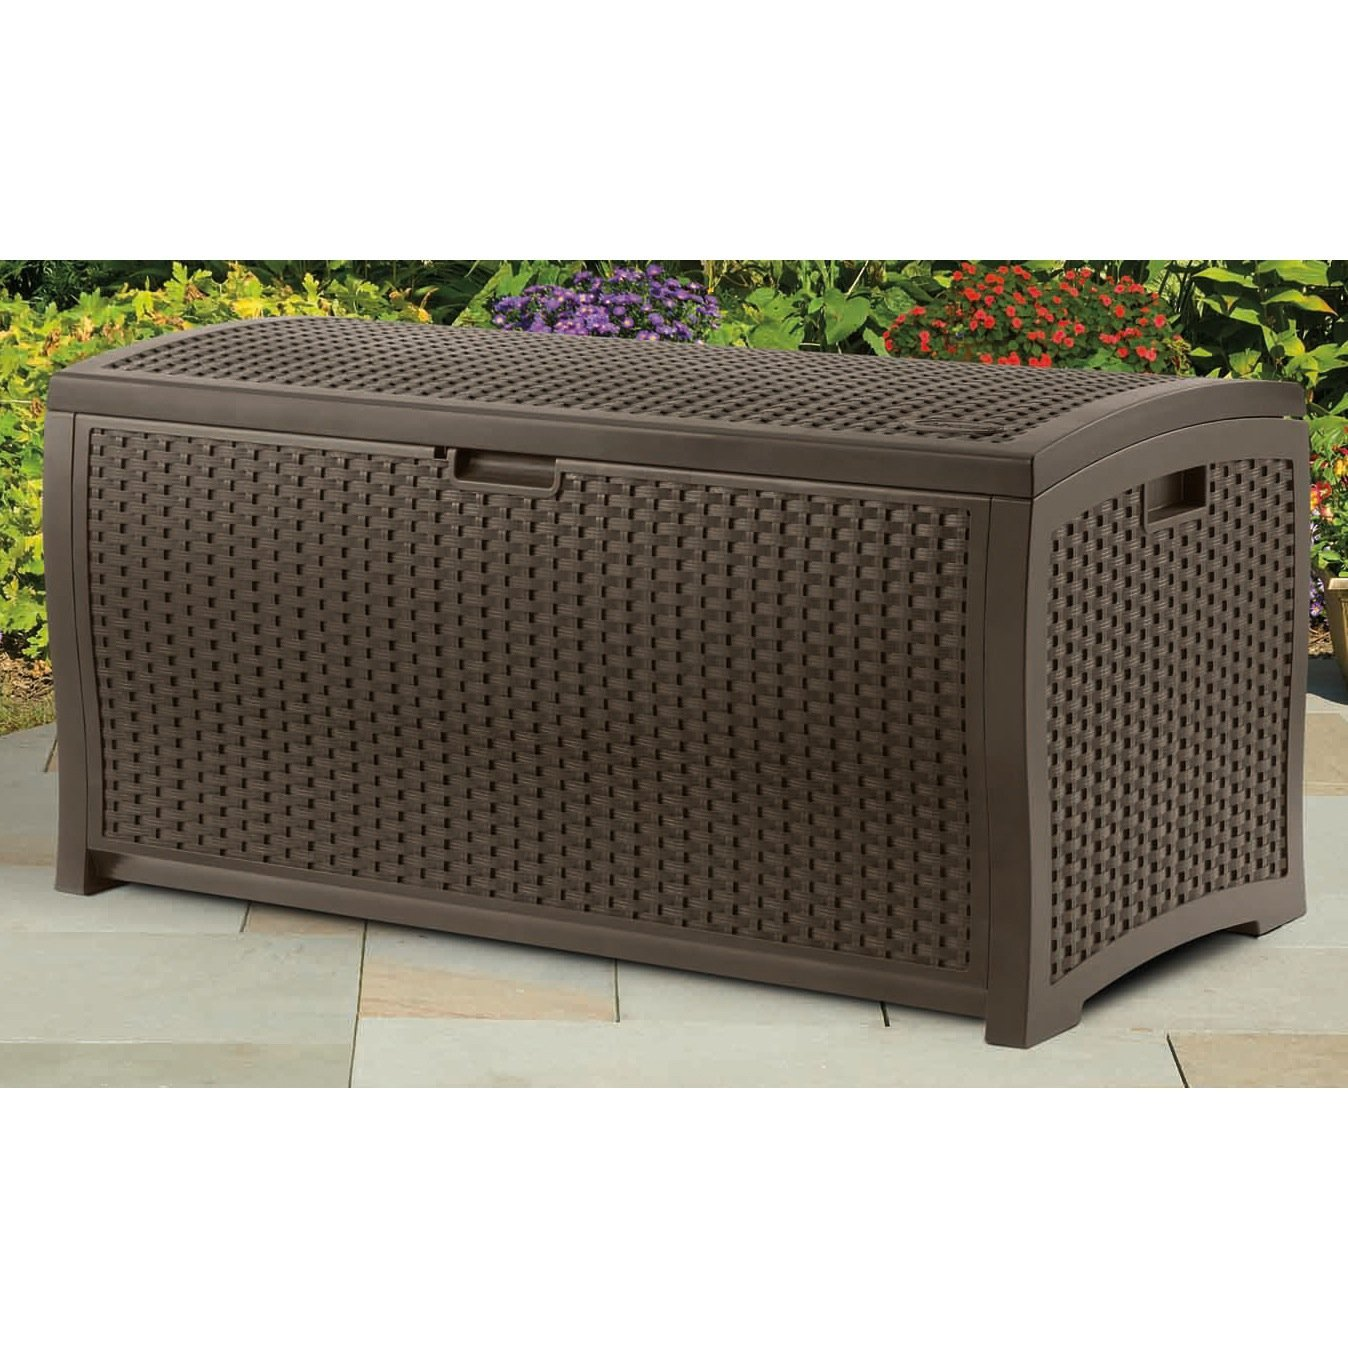 DBW7300 Mocha Wicker Suncast Deck Box Ideas for storage ideas